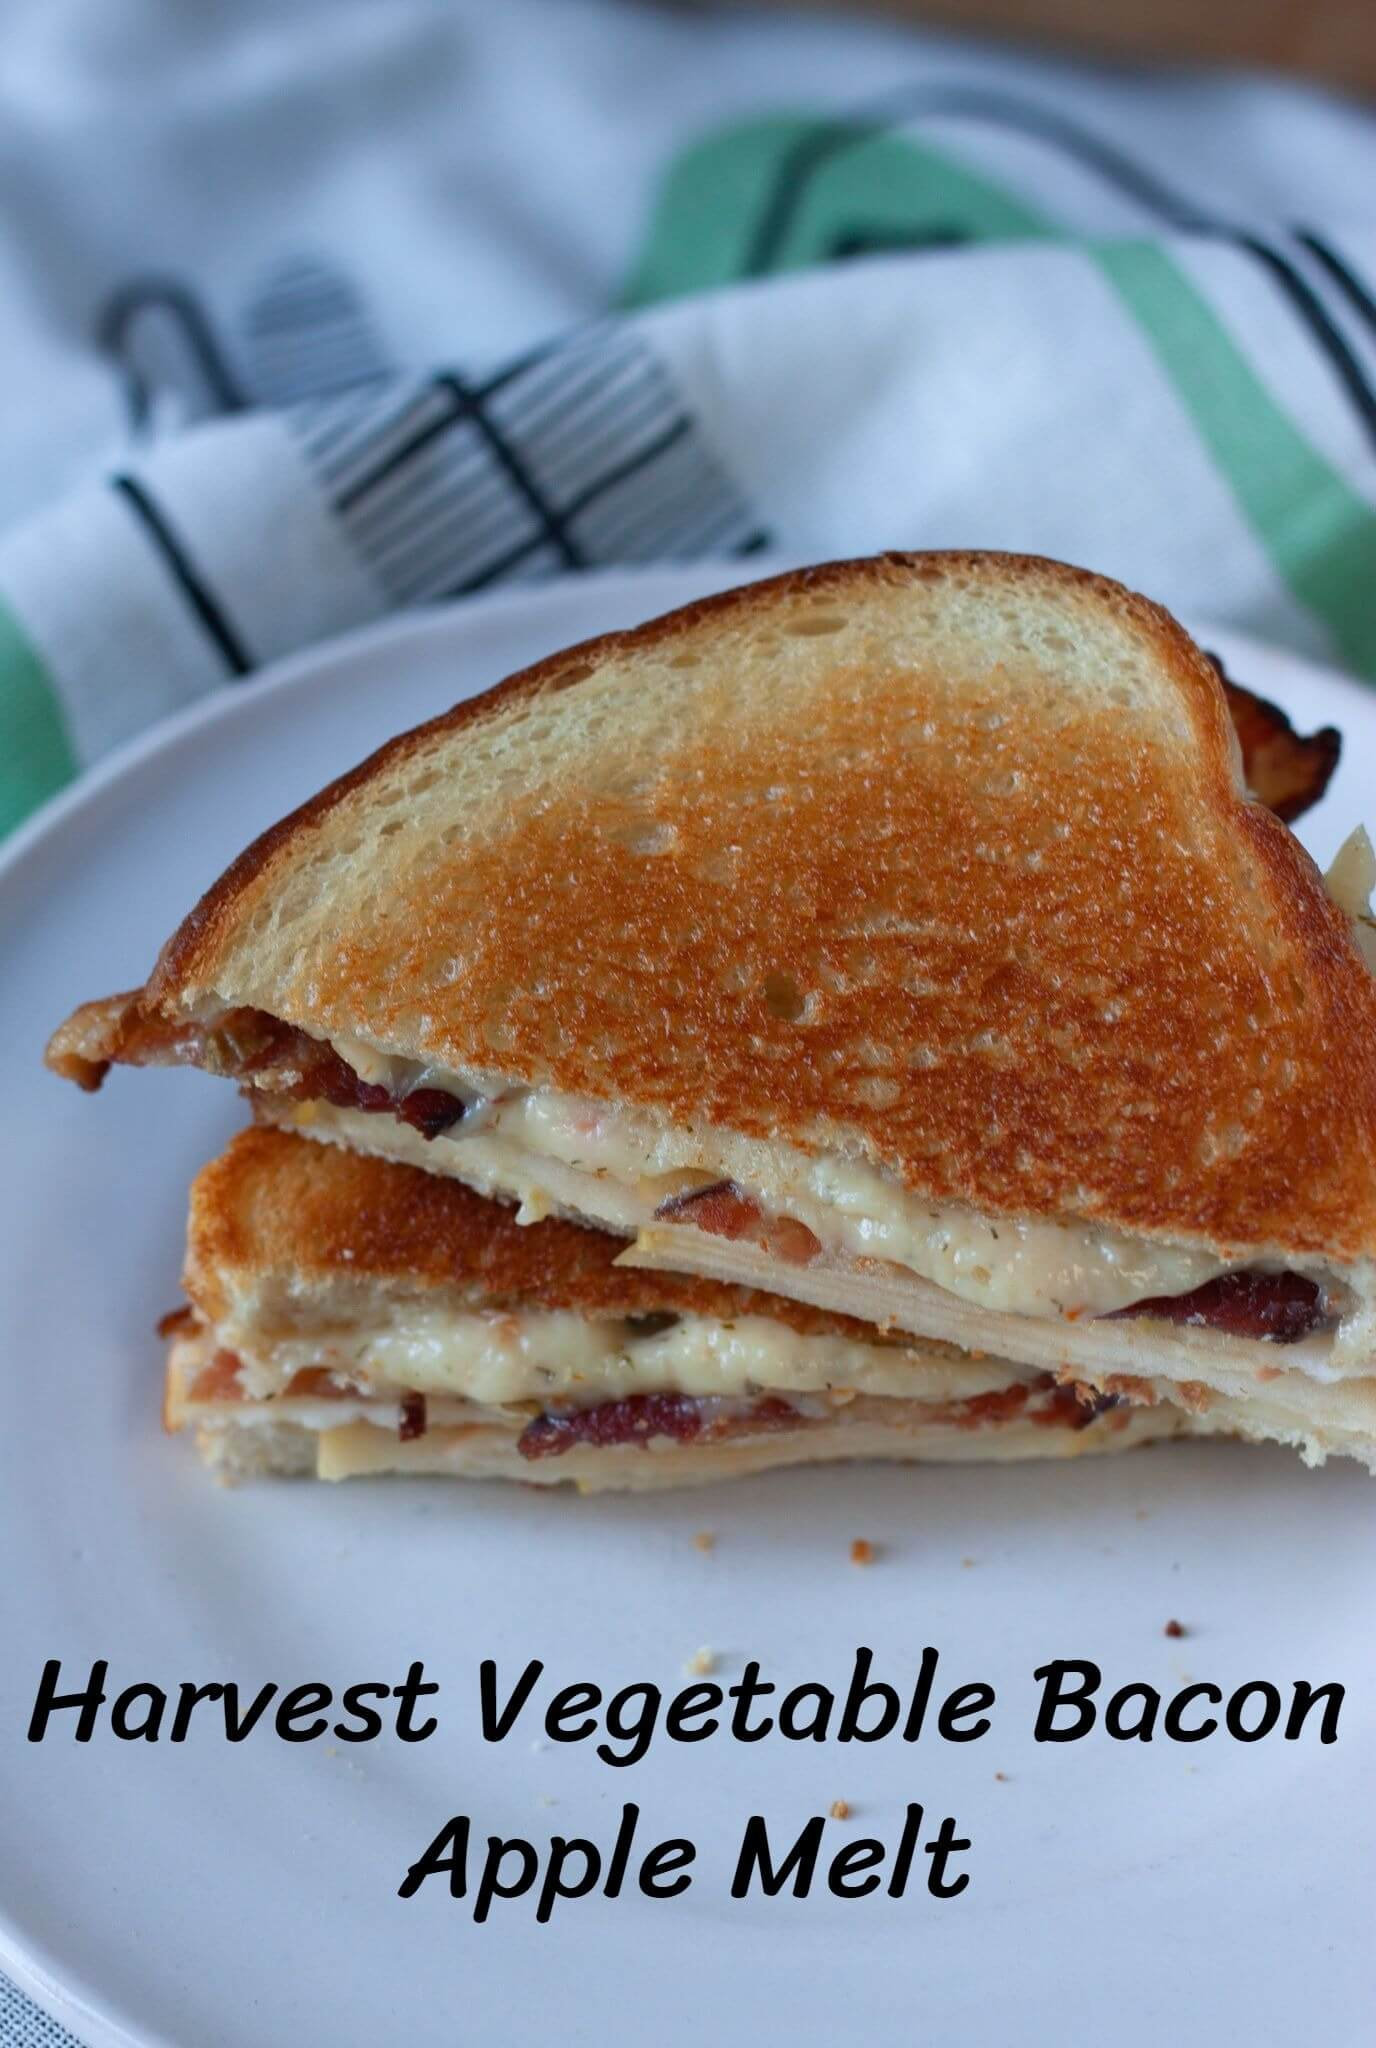 Harvest Vegetable Bacon Apple Melt